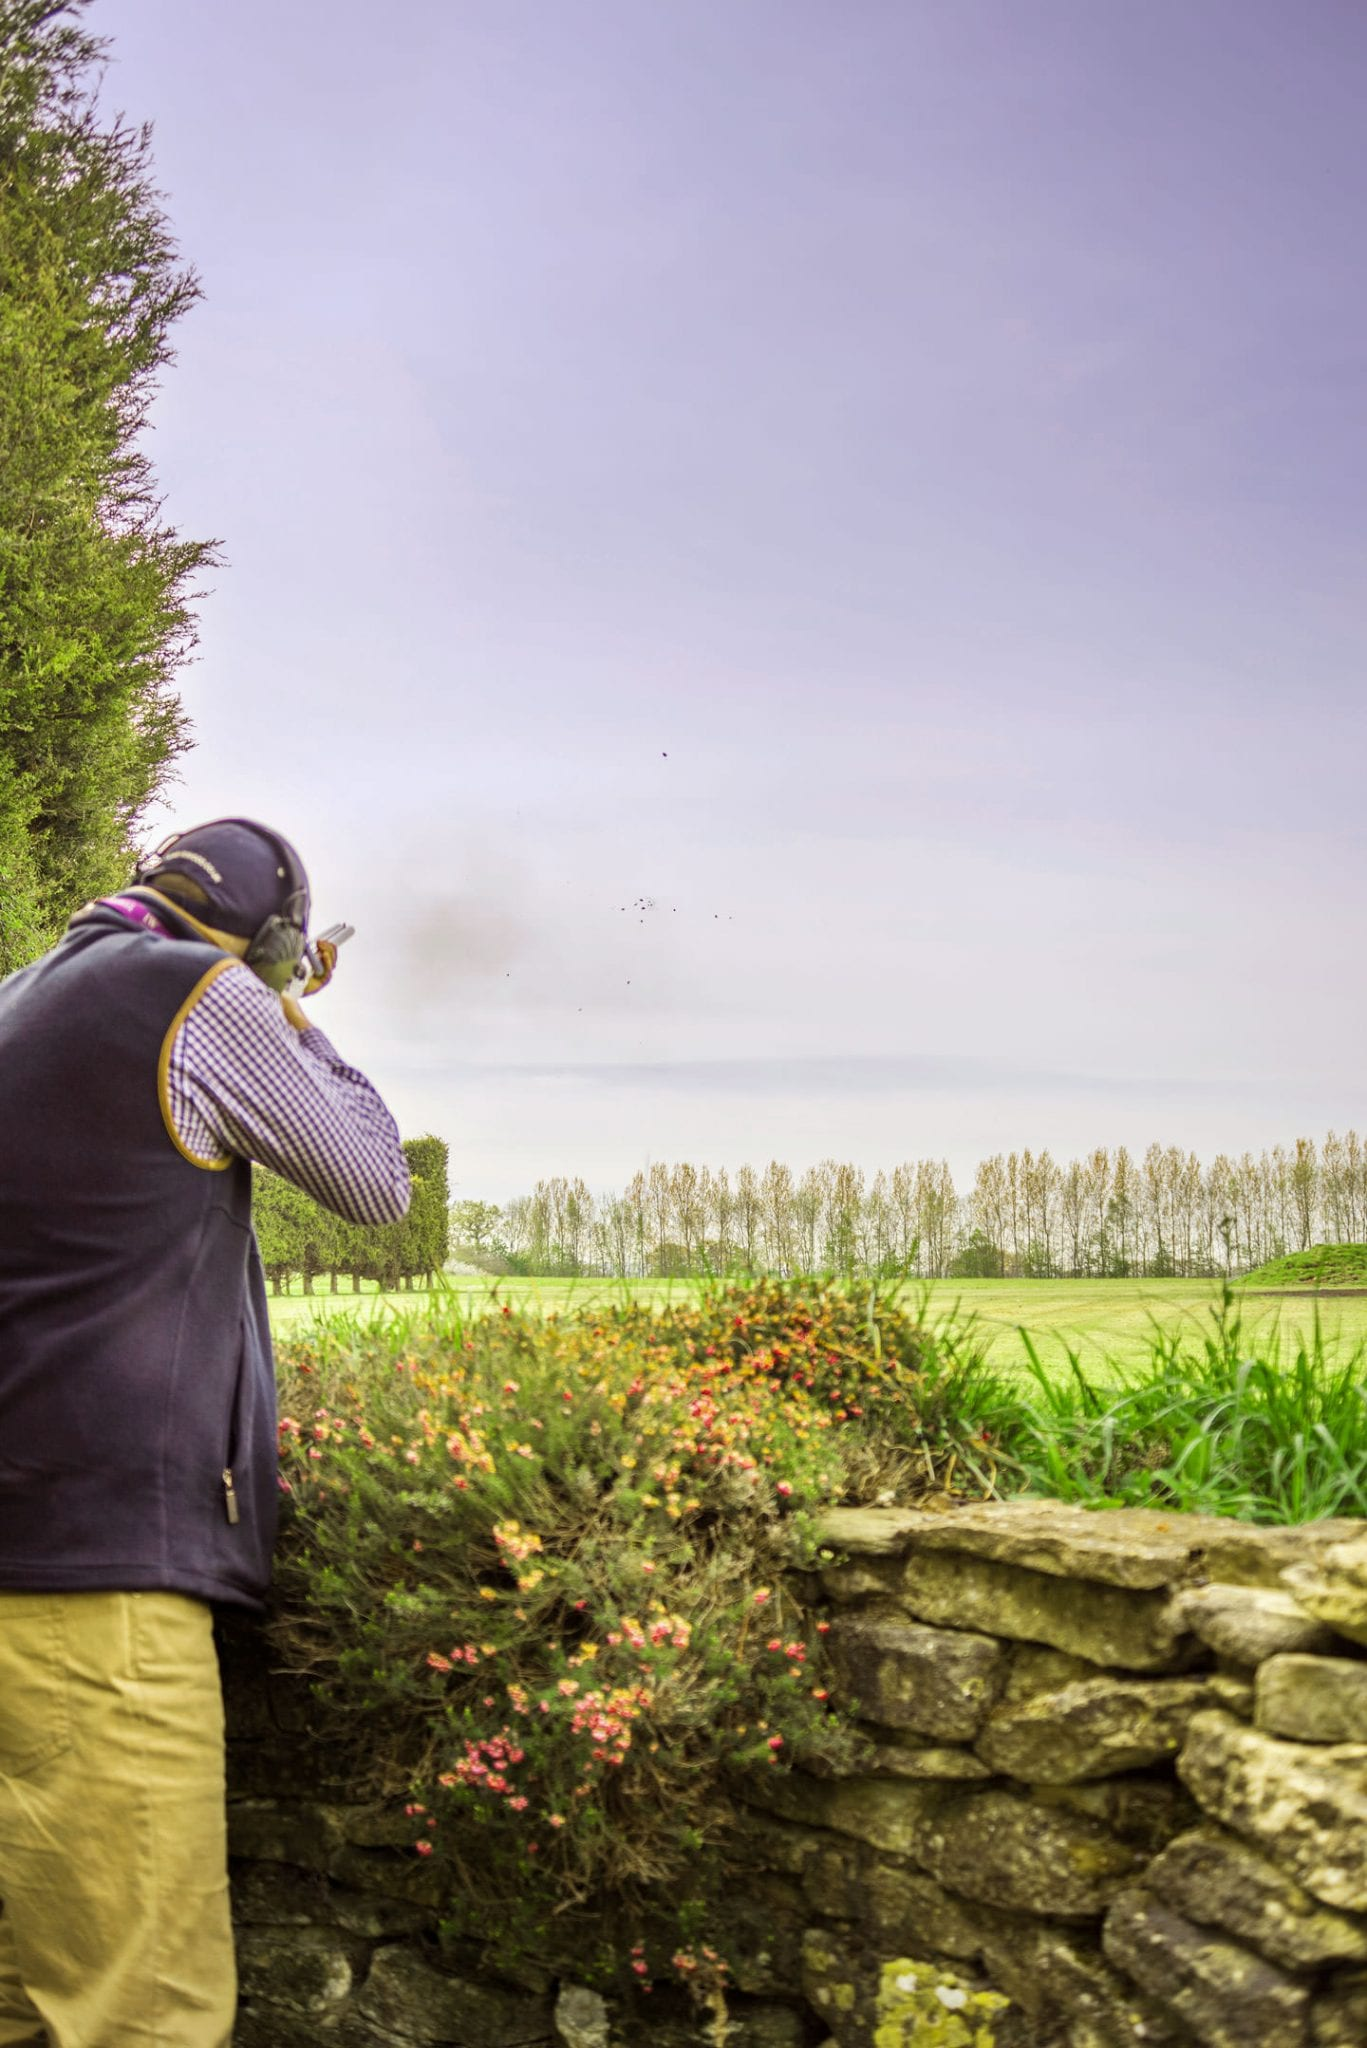 Hitting a clay while clay pigeon shooting at Lady's Wood Shooting School